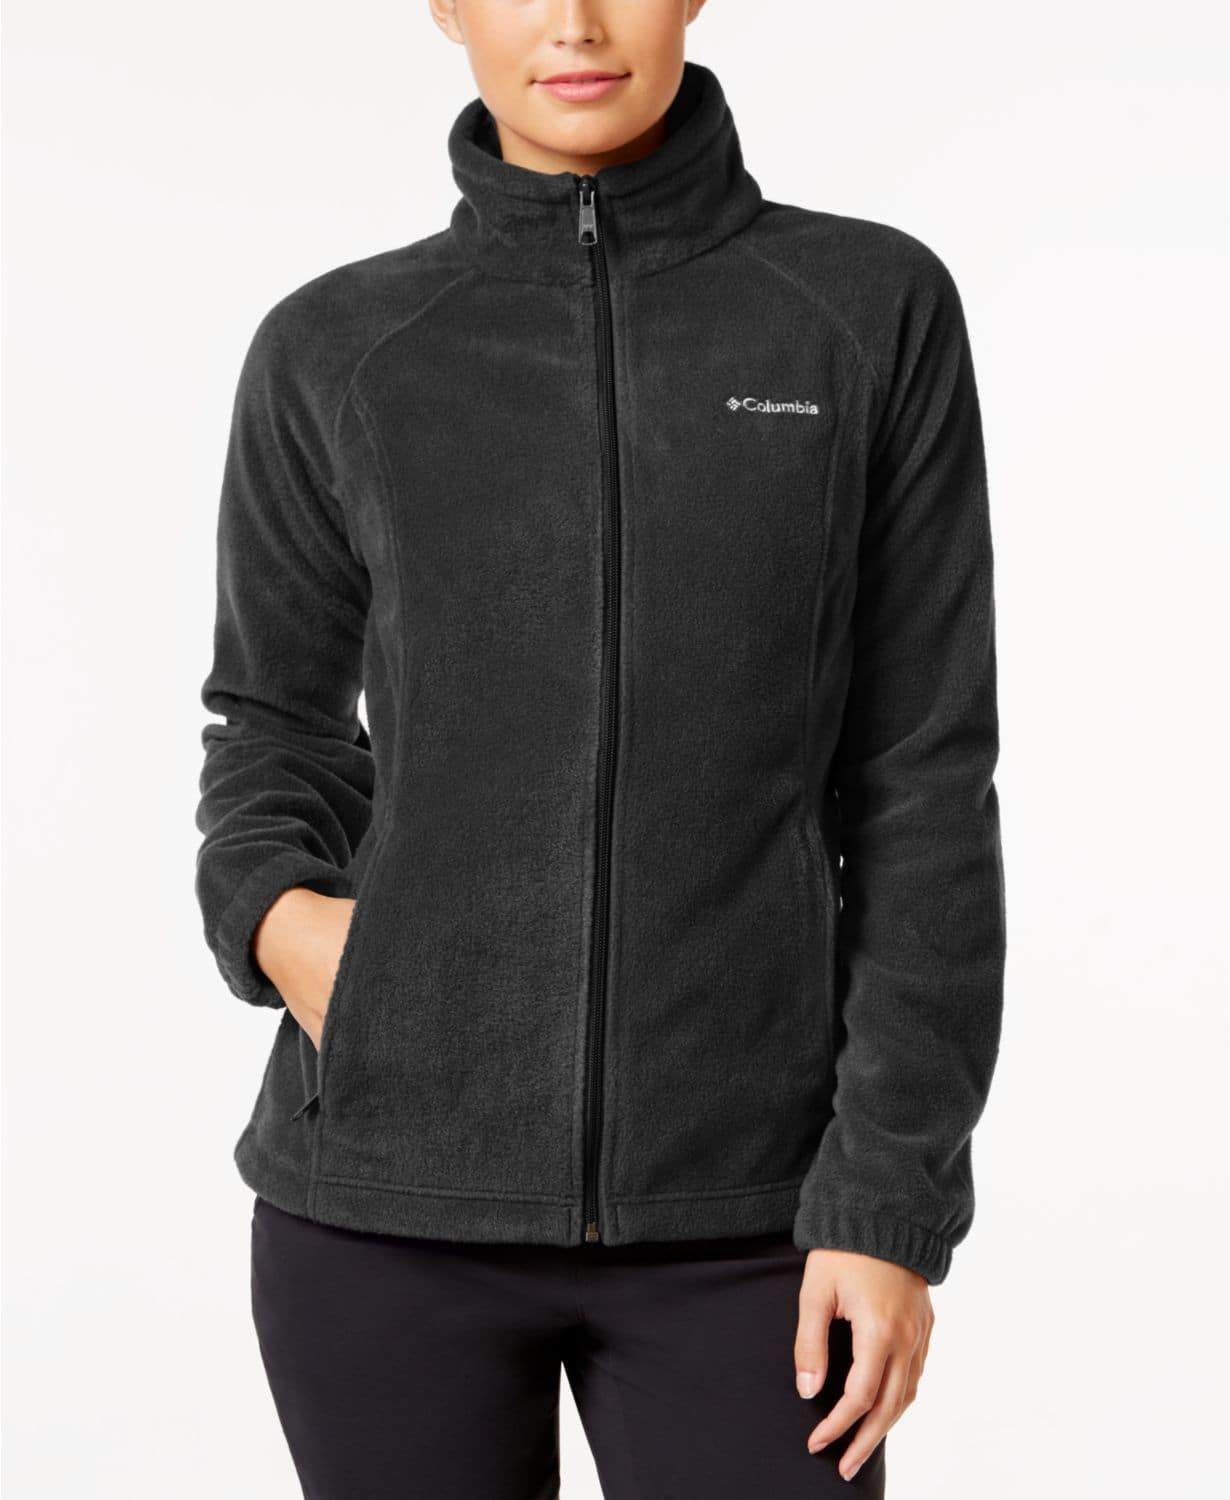 Columbia Women's Benton Springs Fleece Jacket (Petite, Black) $18 + free shipping